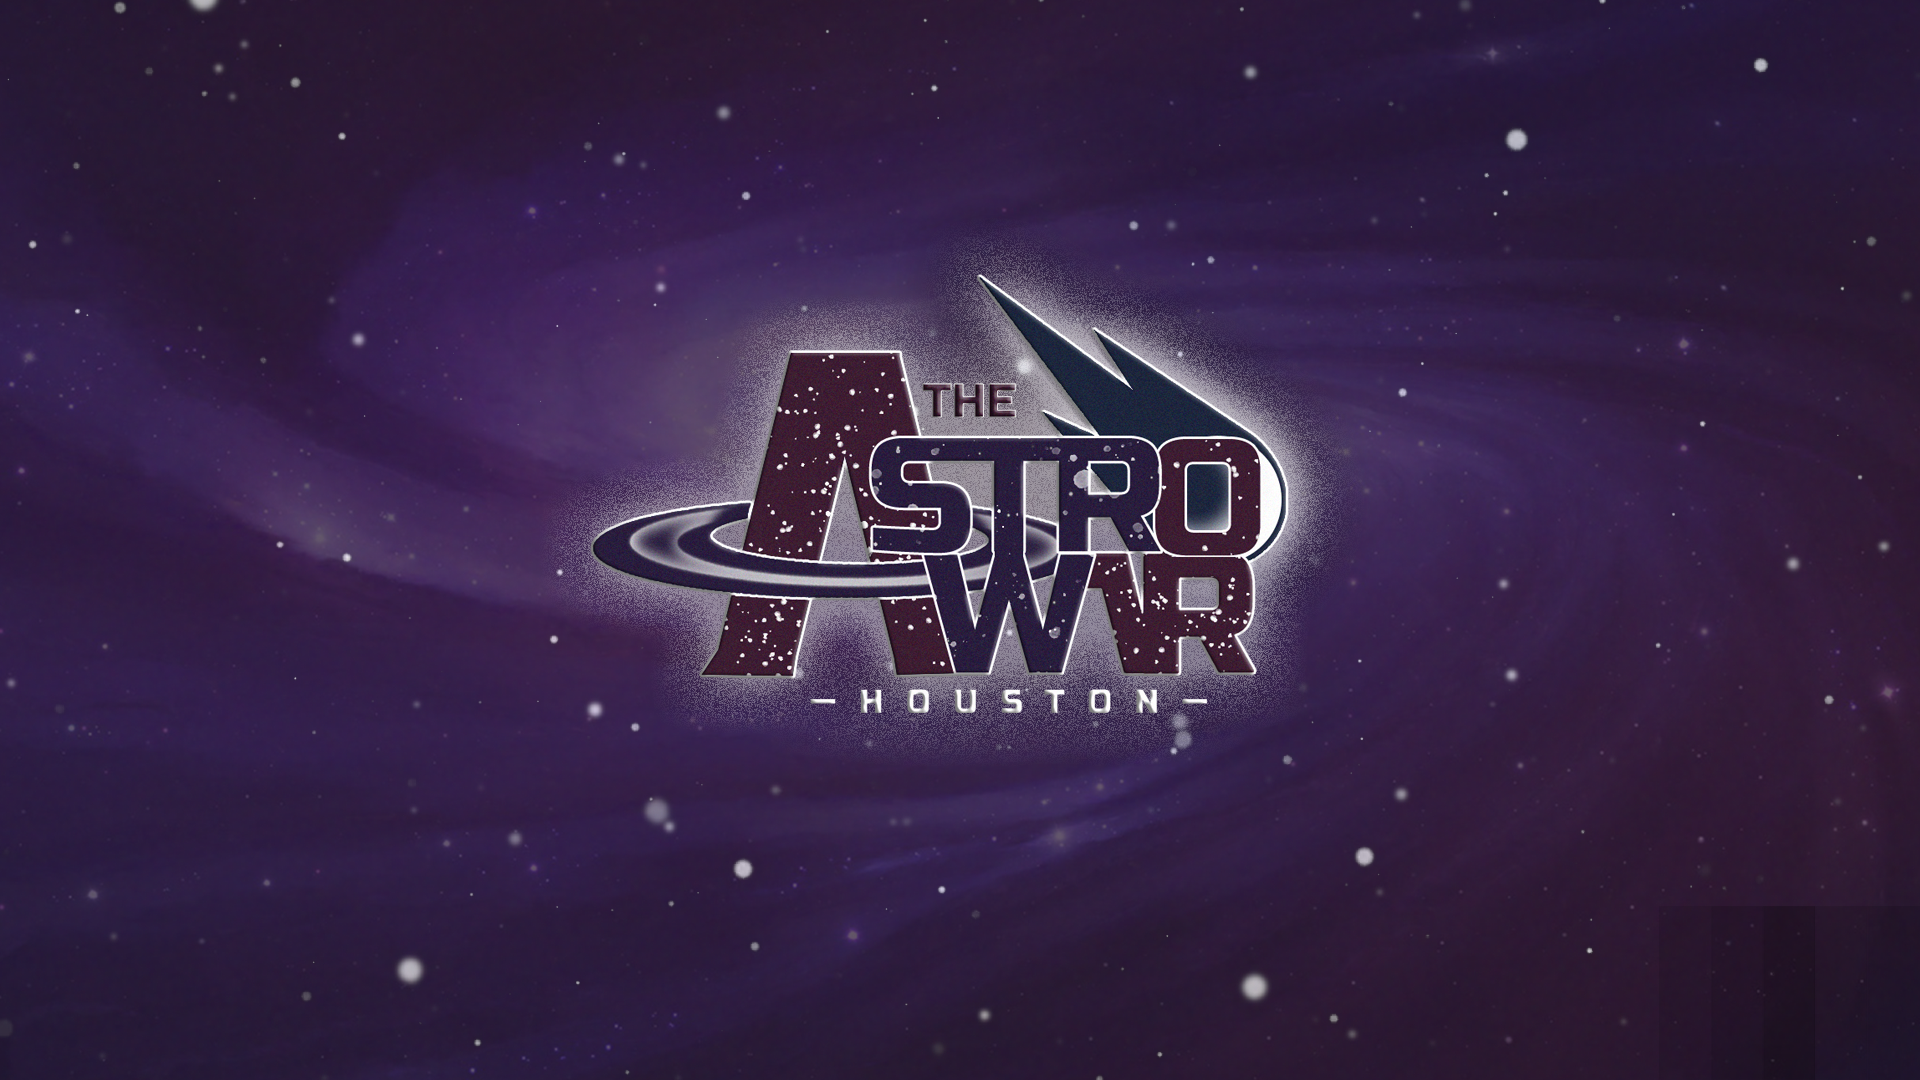 The Astro War - May 5th - Houston Game Guys4108 Glenbrook Ct, Houston, TX 77087 • $3000 • Double Elimination • Call of Duty: Black Ops4 • Playstation 4